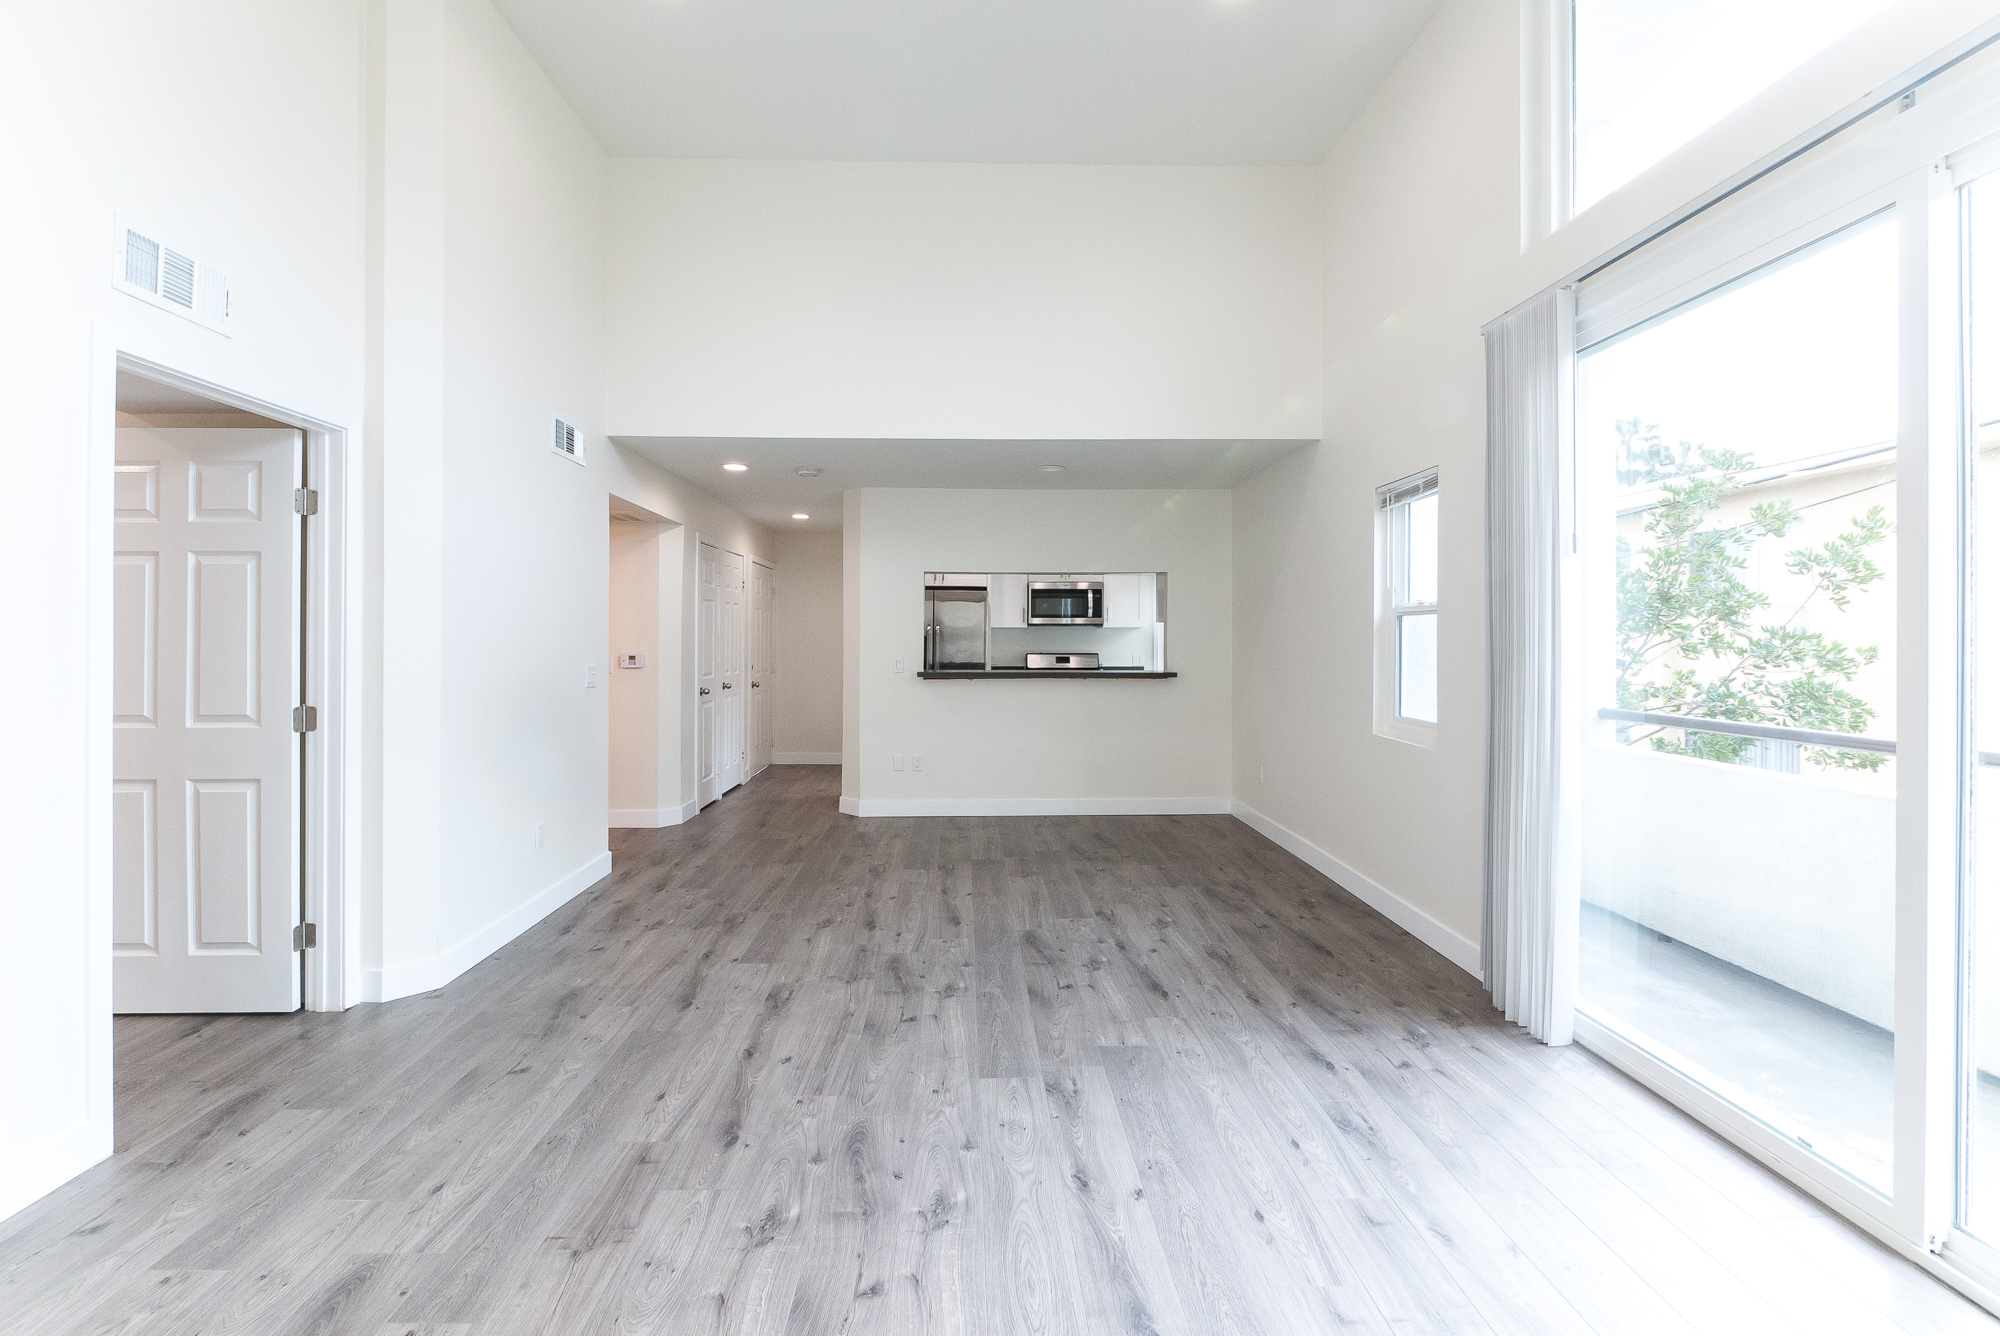 BEYOND GORGEOUS 2BR/2BR with 12 FT Ceilings and TWO BALCONIES! Parking, too!